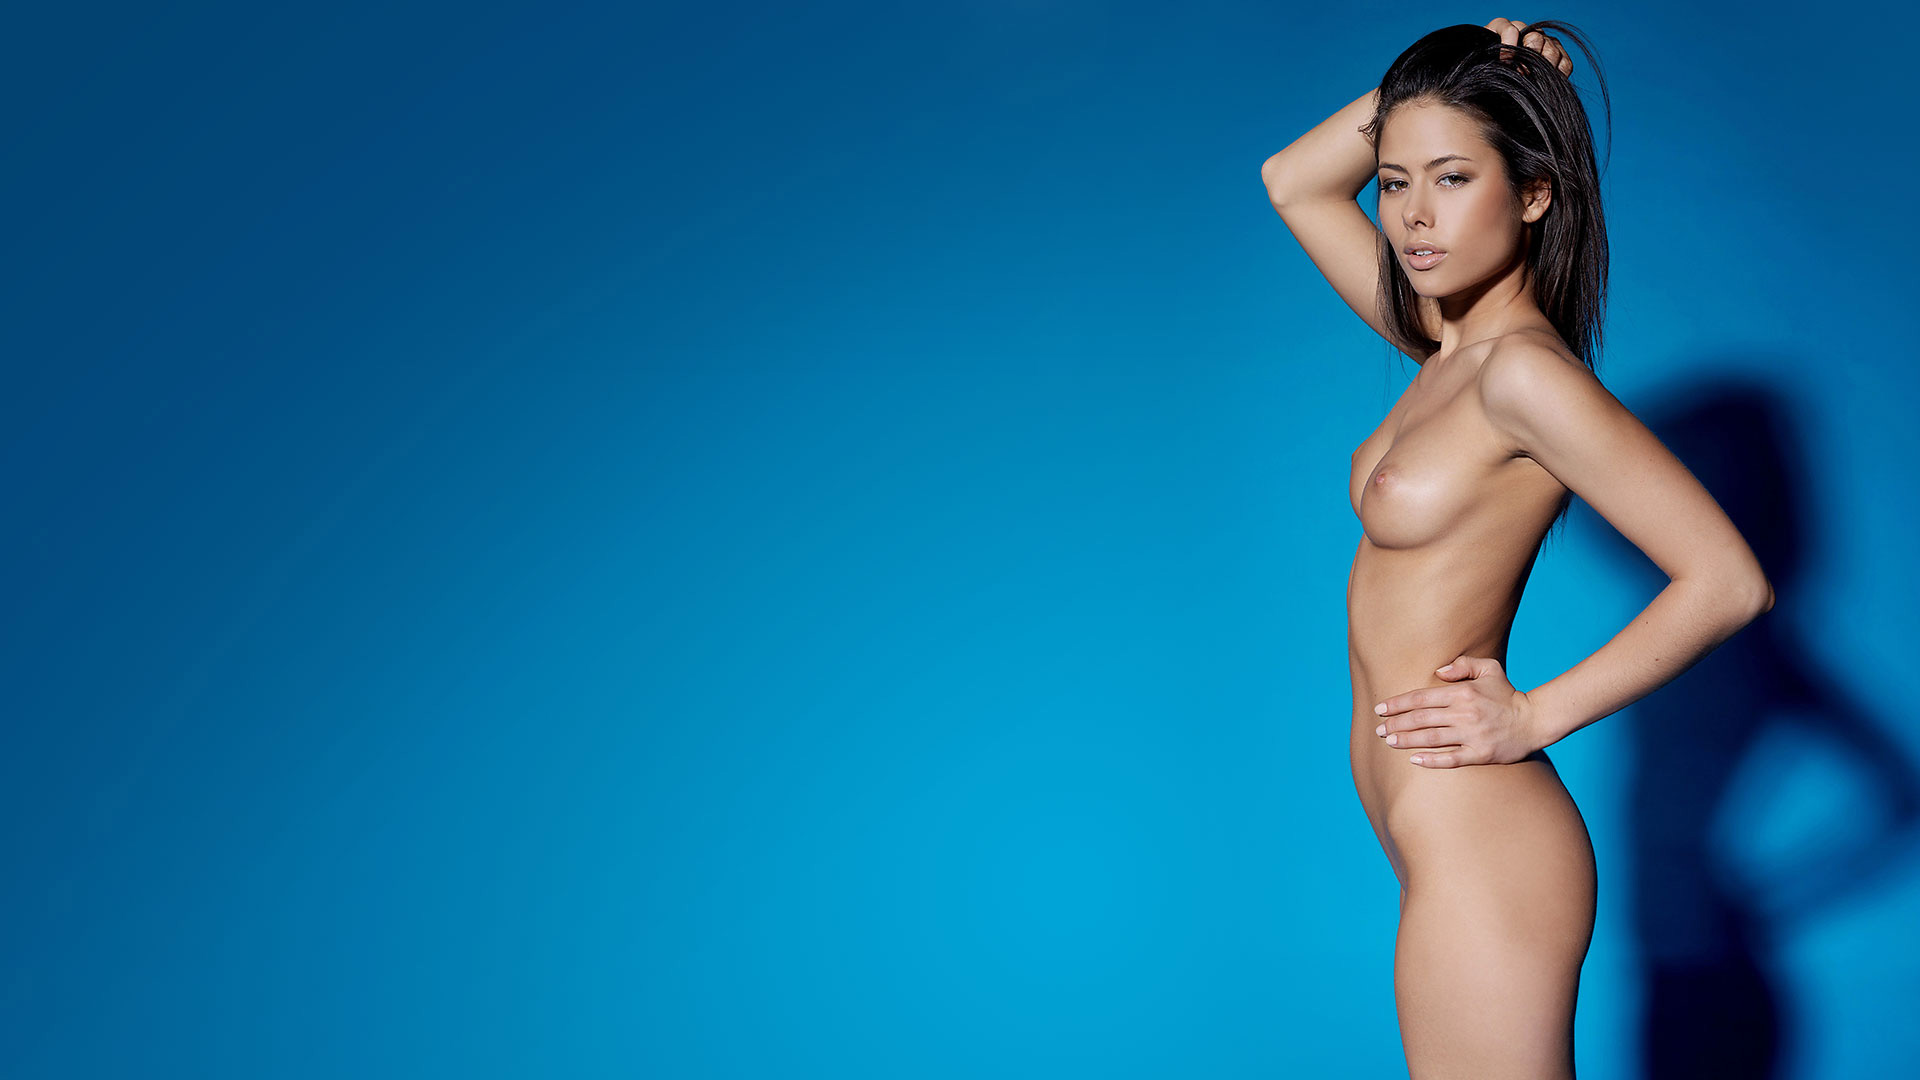 Nude hd pc images sexy movie